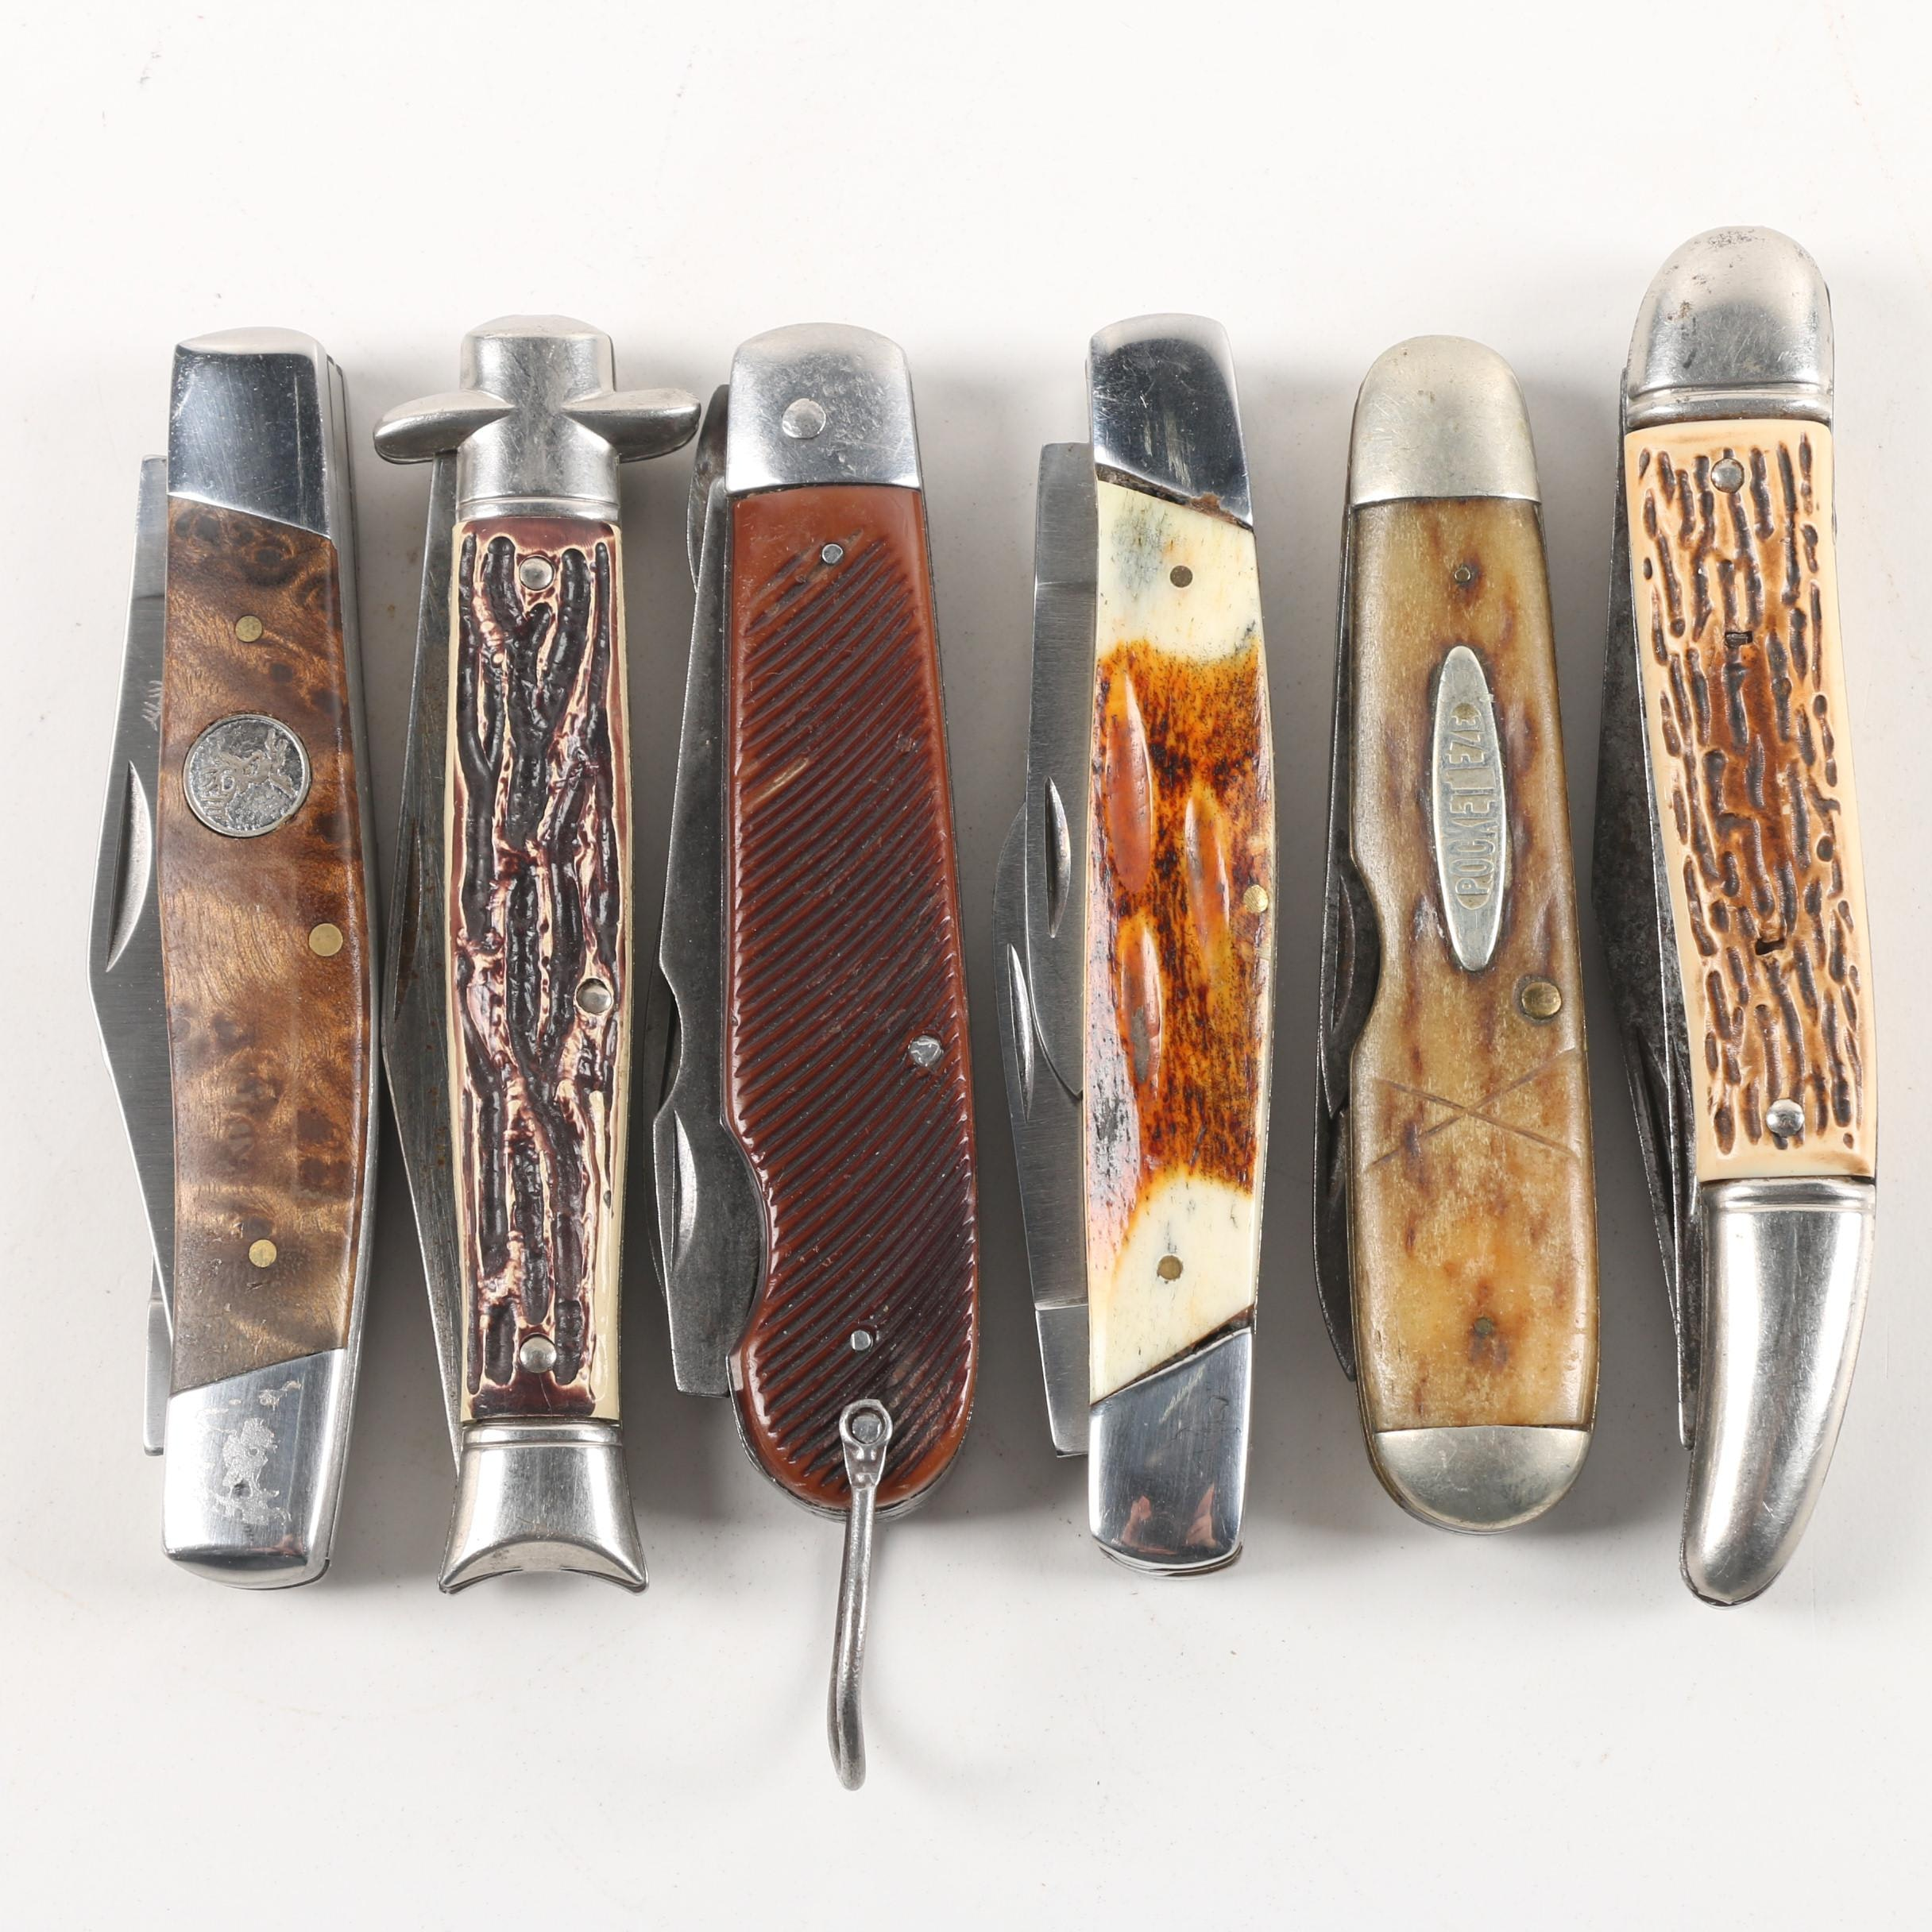 Pocket Eze, Elk Ridge And Other Vintage Folding Pocket Knives